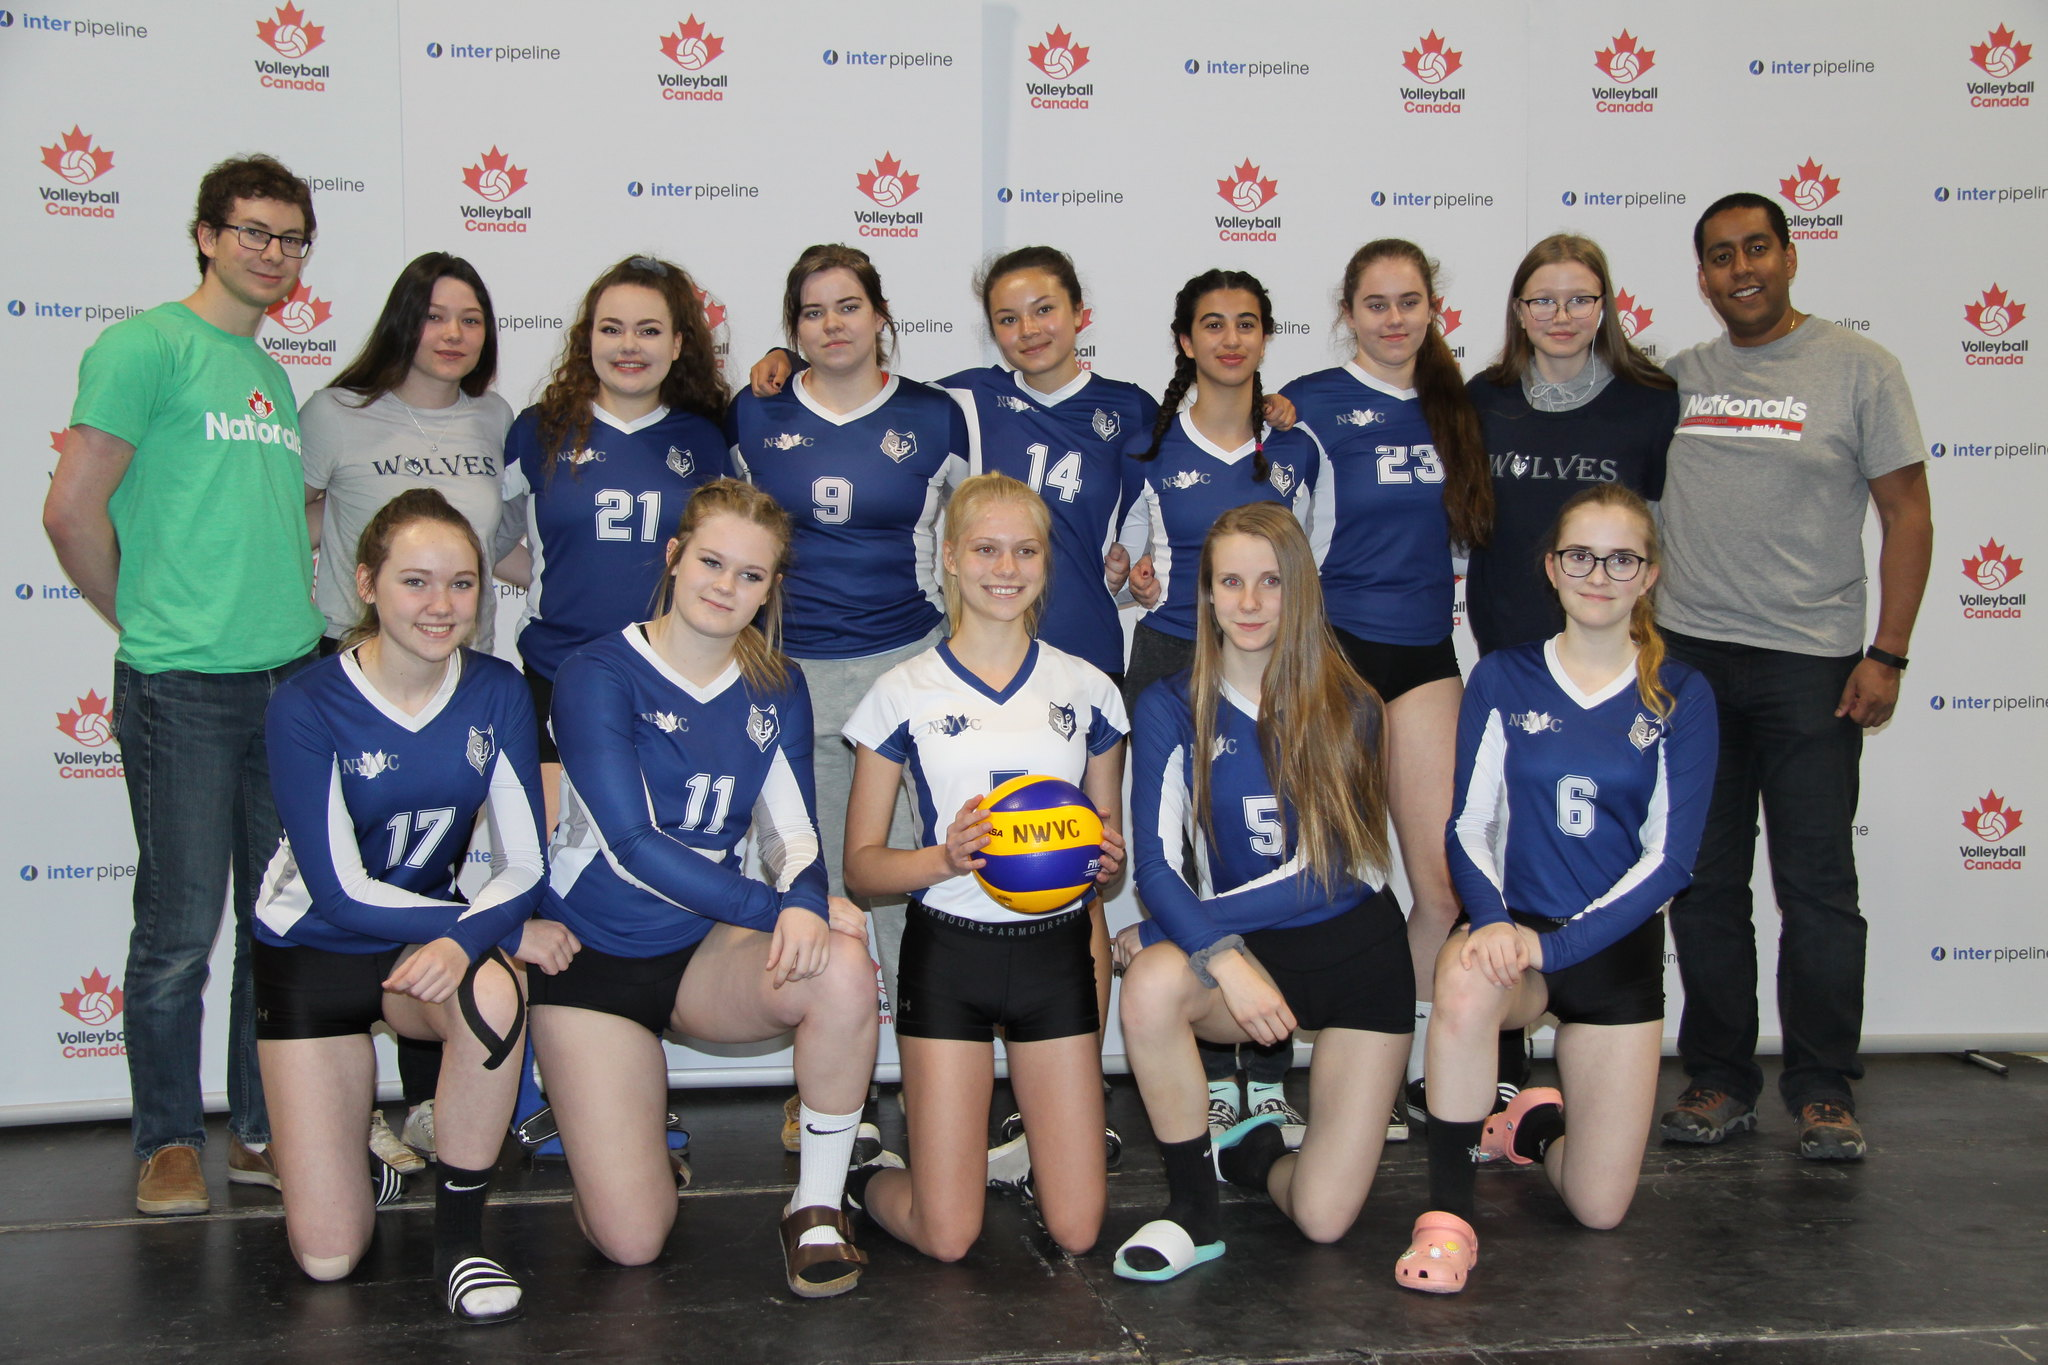 U16 Nationals 5